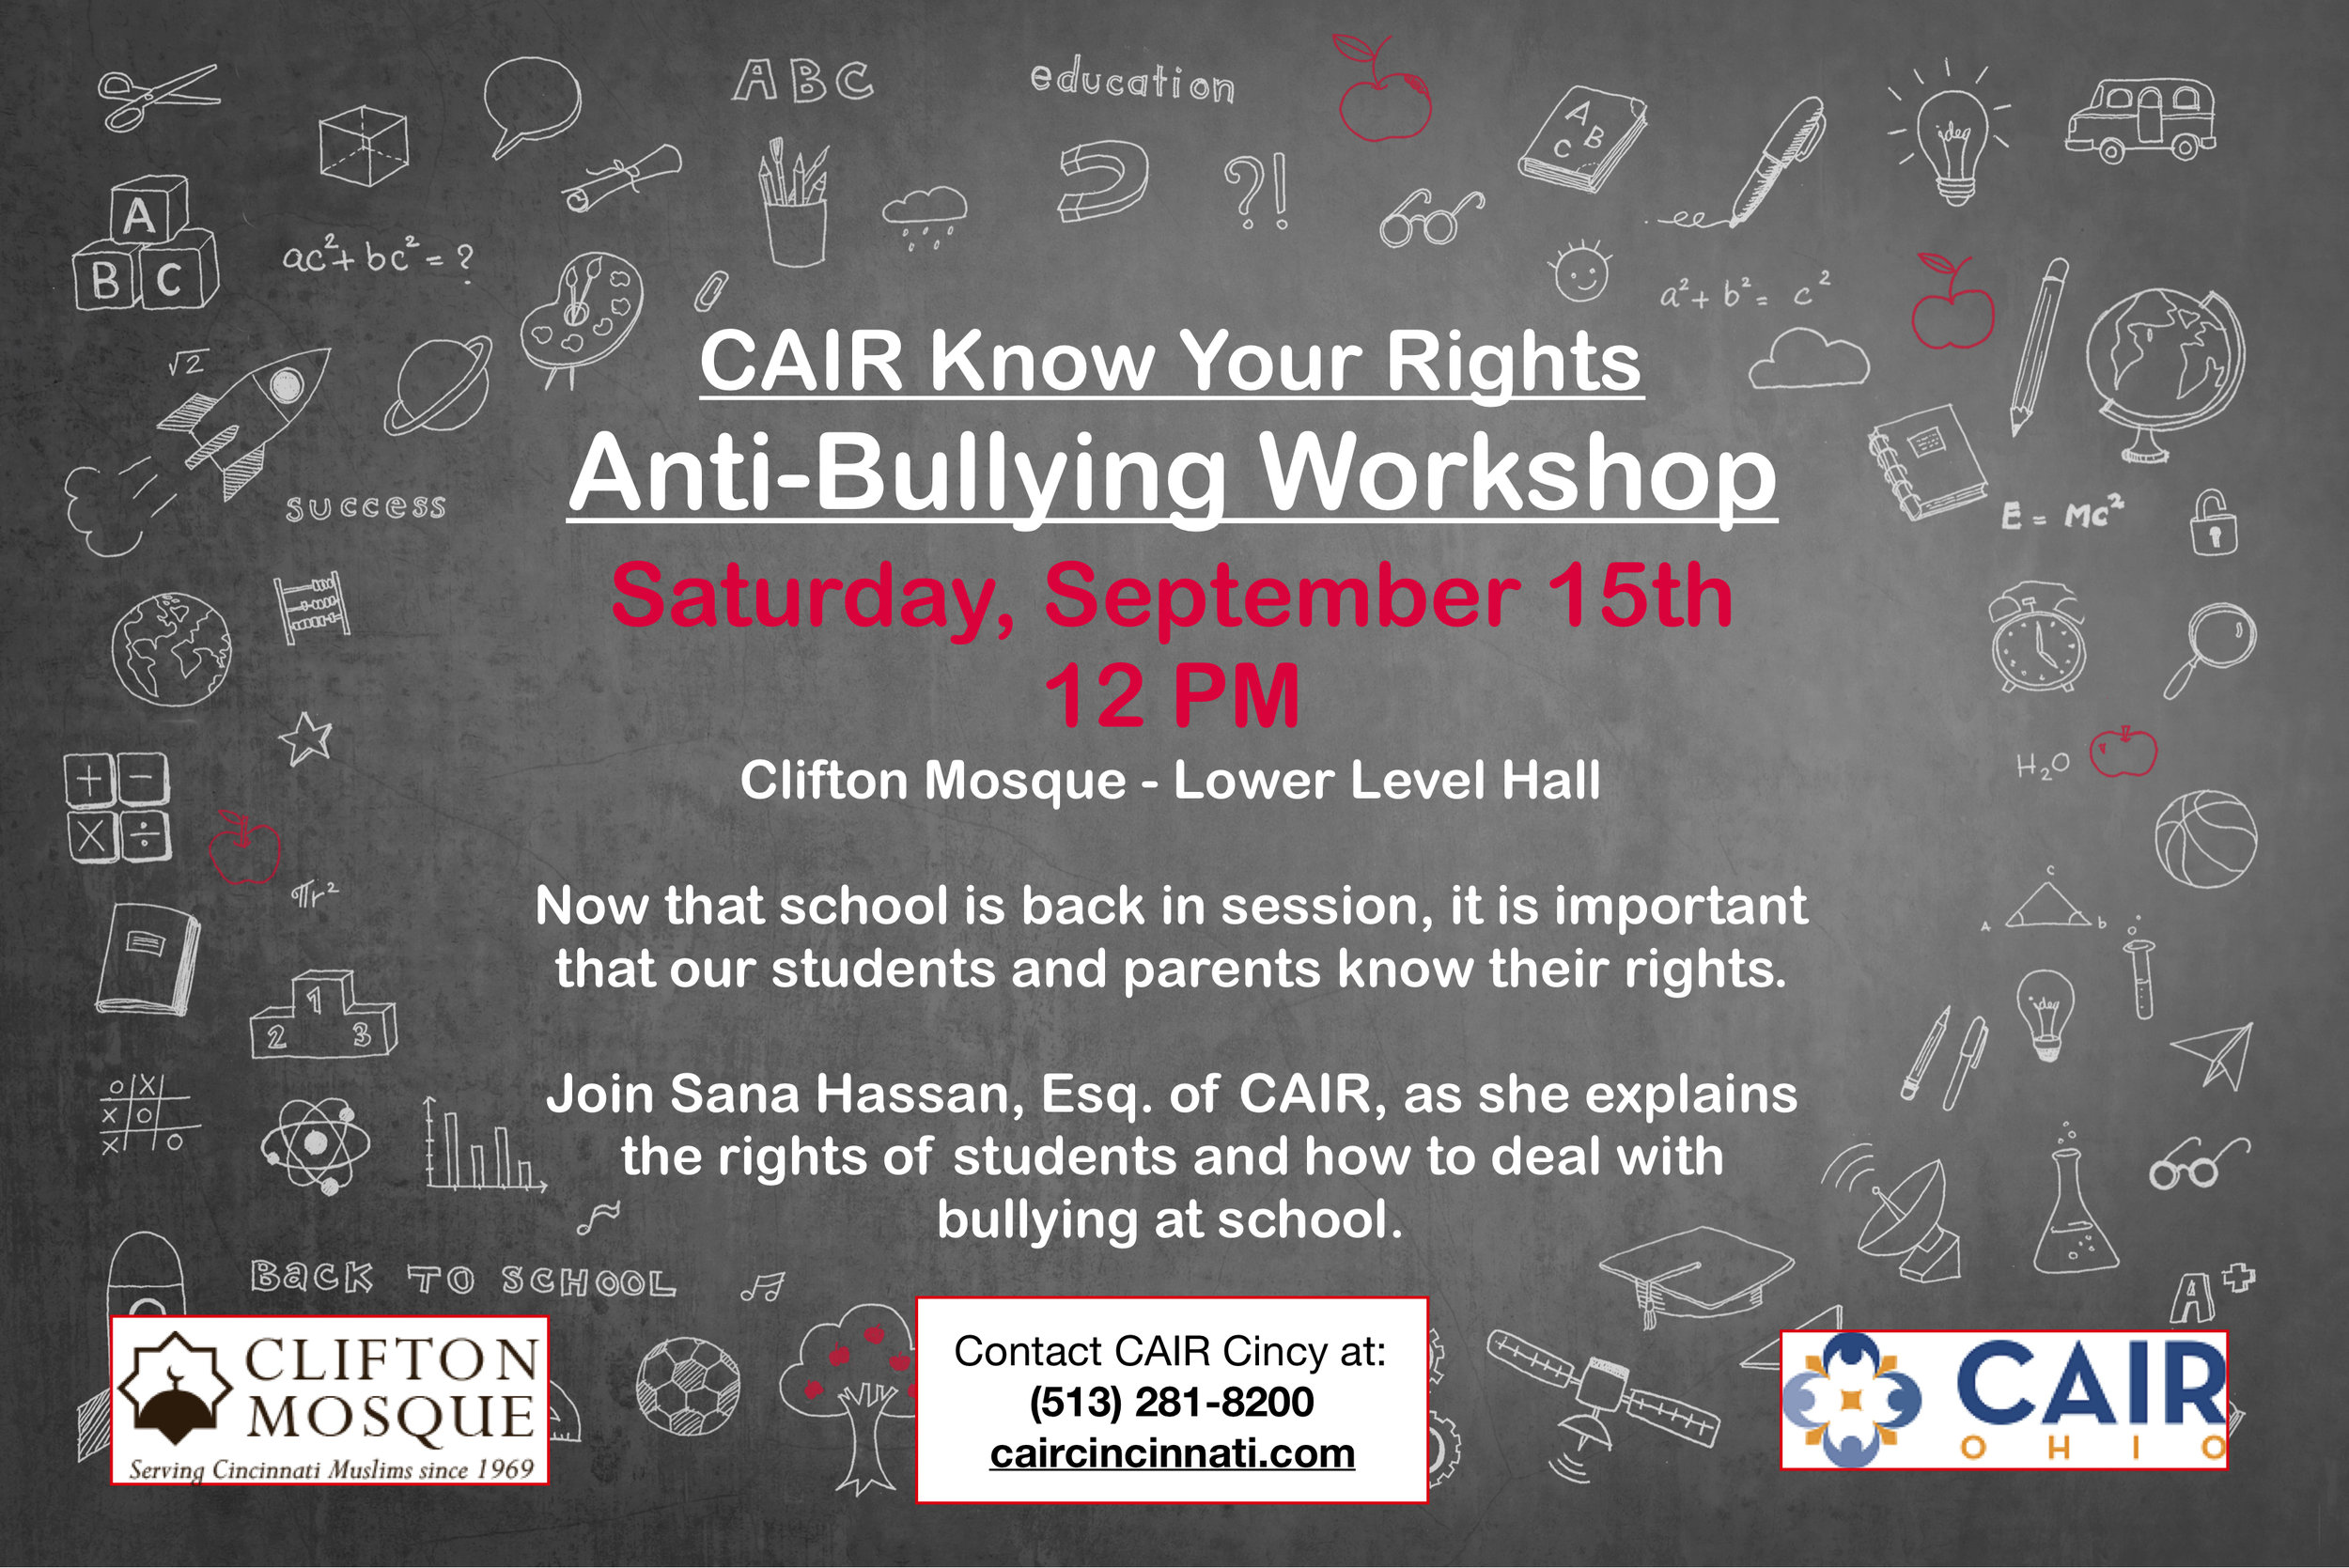 CAIR is offering an Anti-bullying workshop for youth and their parents.  This is happening on September 15th at 12:00 PM, during Saturday School.    All are welcome to join this workshop with Sana Hassan, Eqs of CAIR